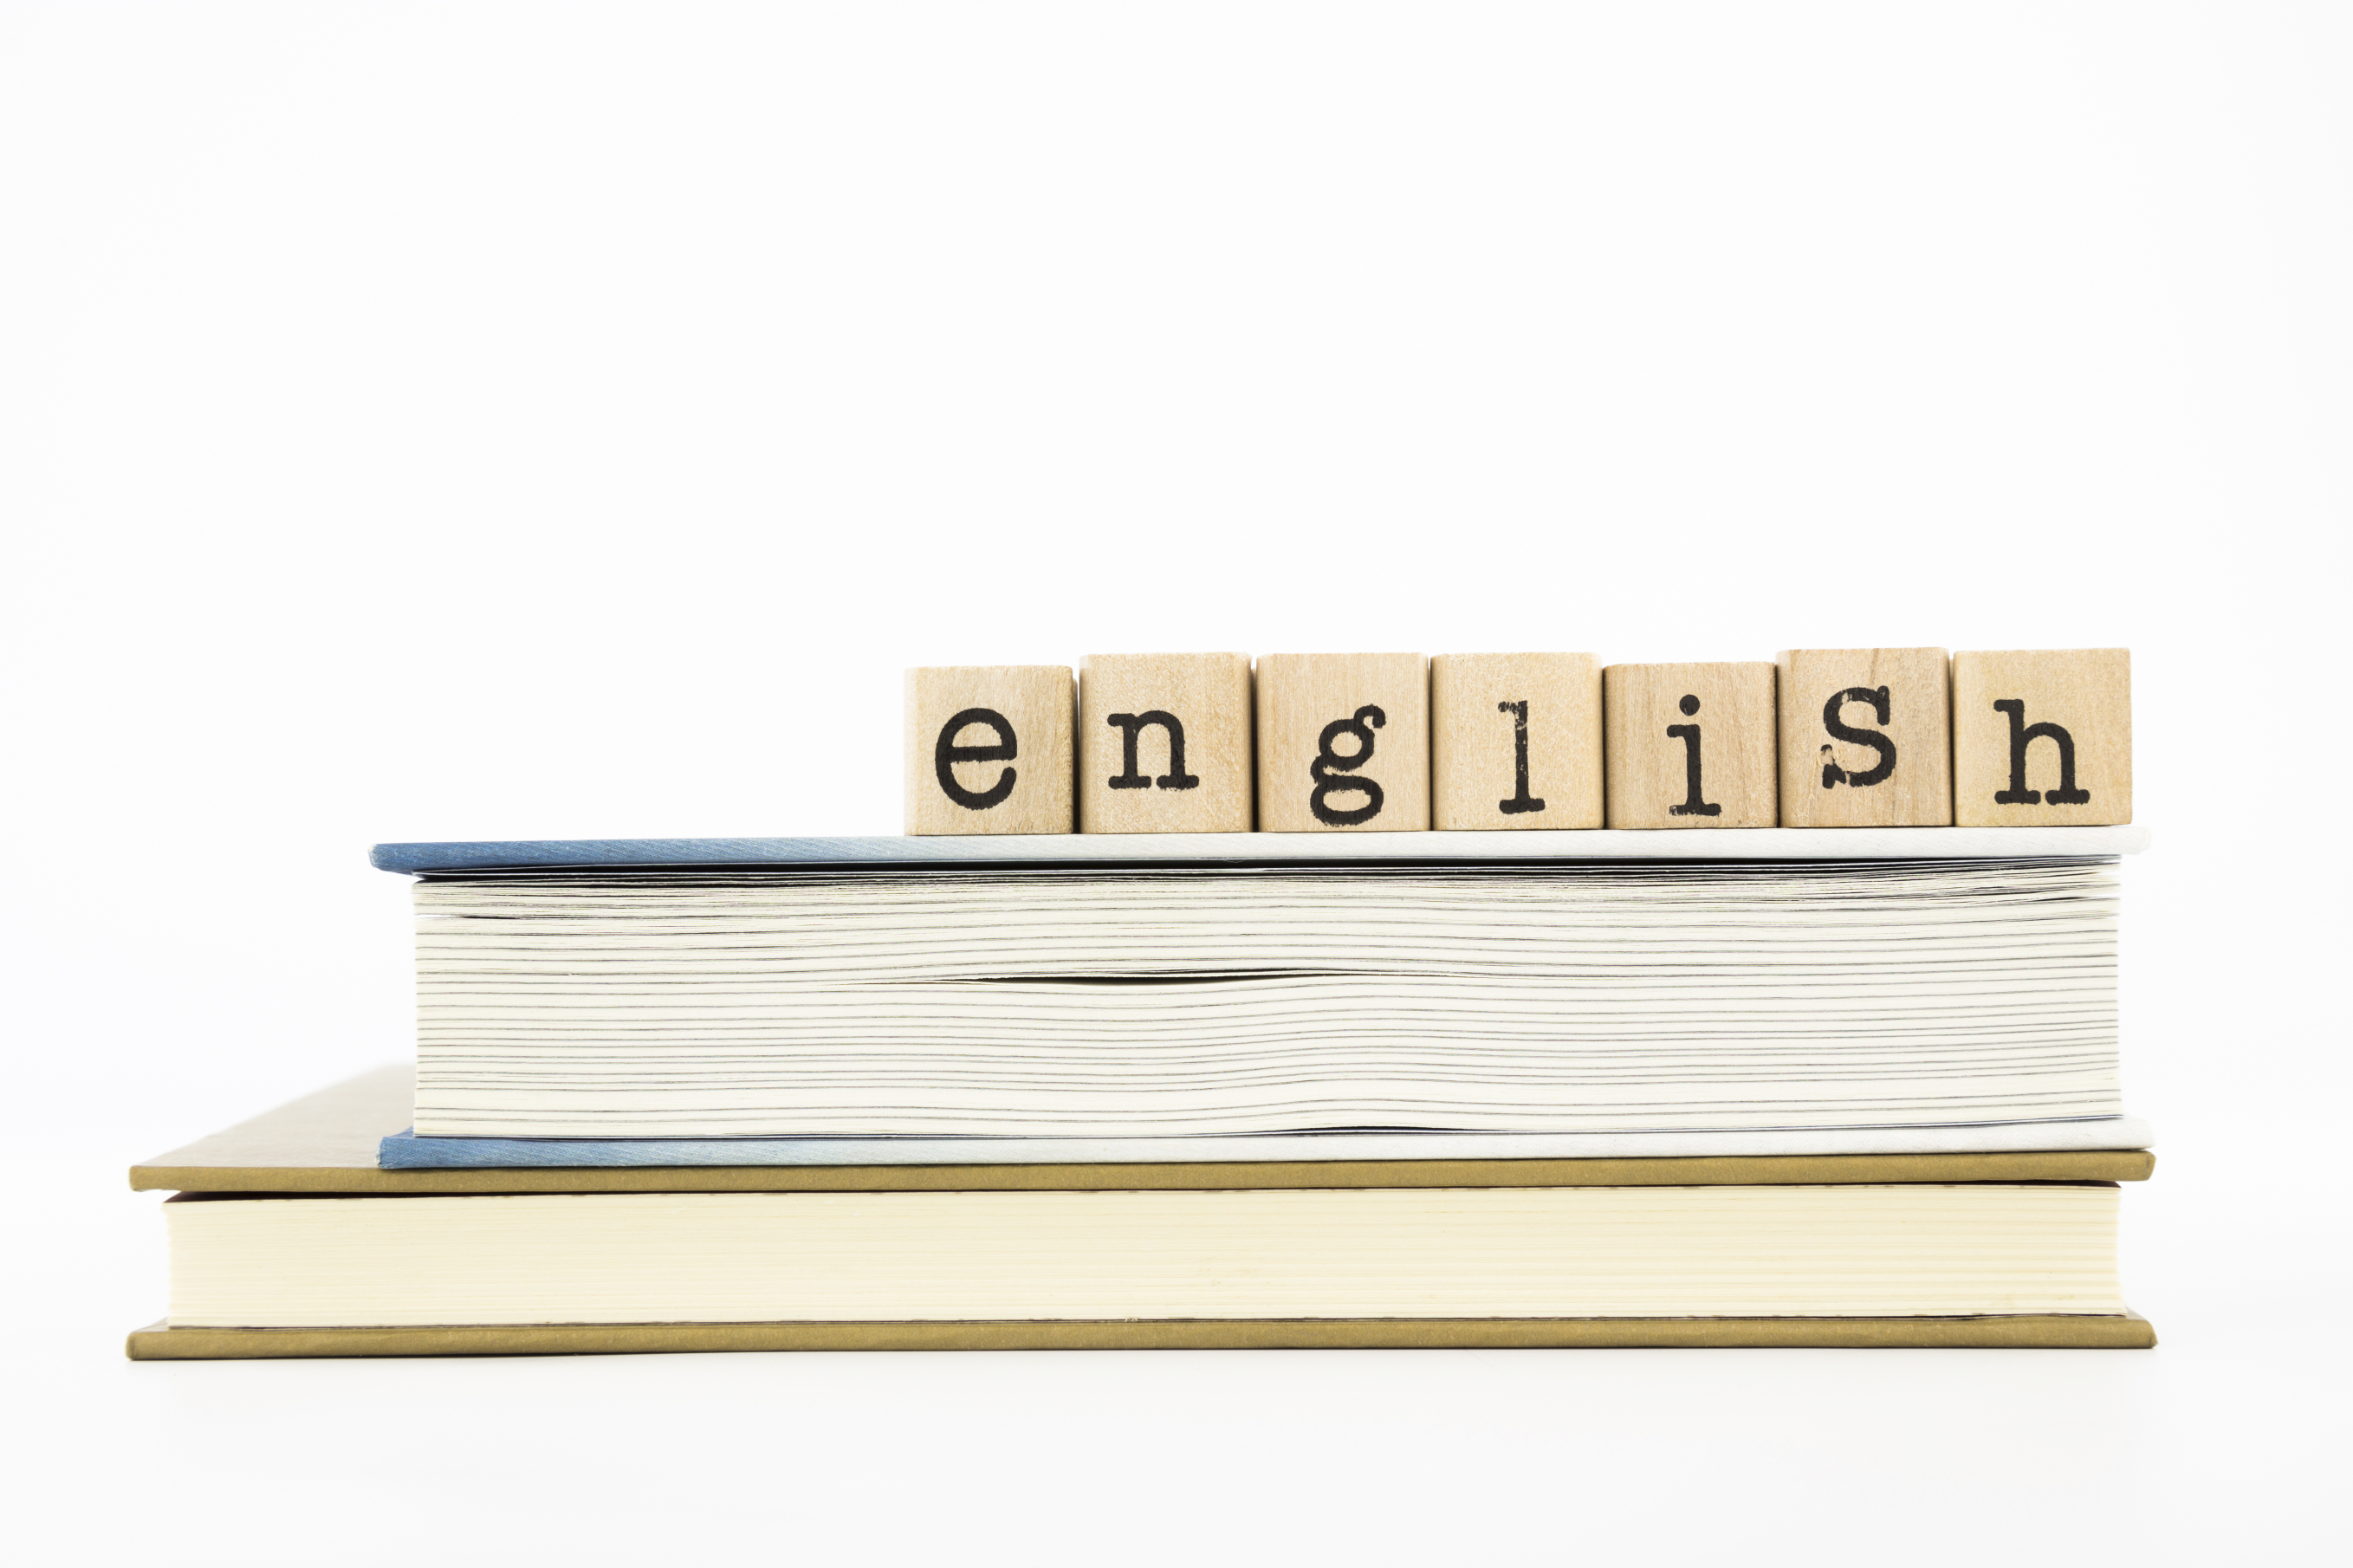 english wording and books